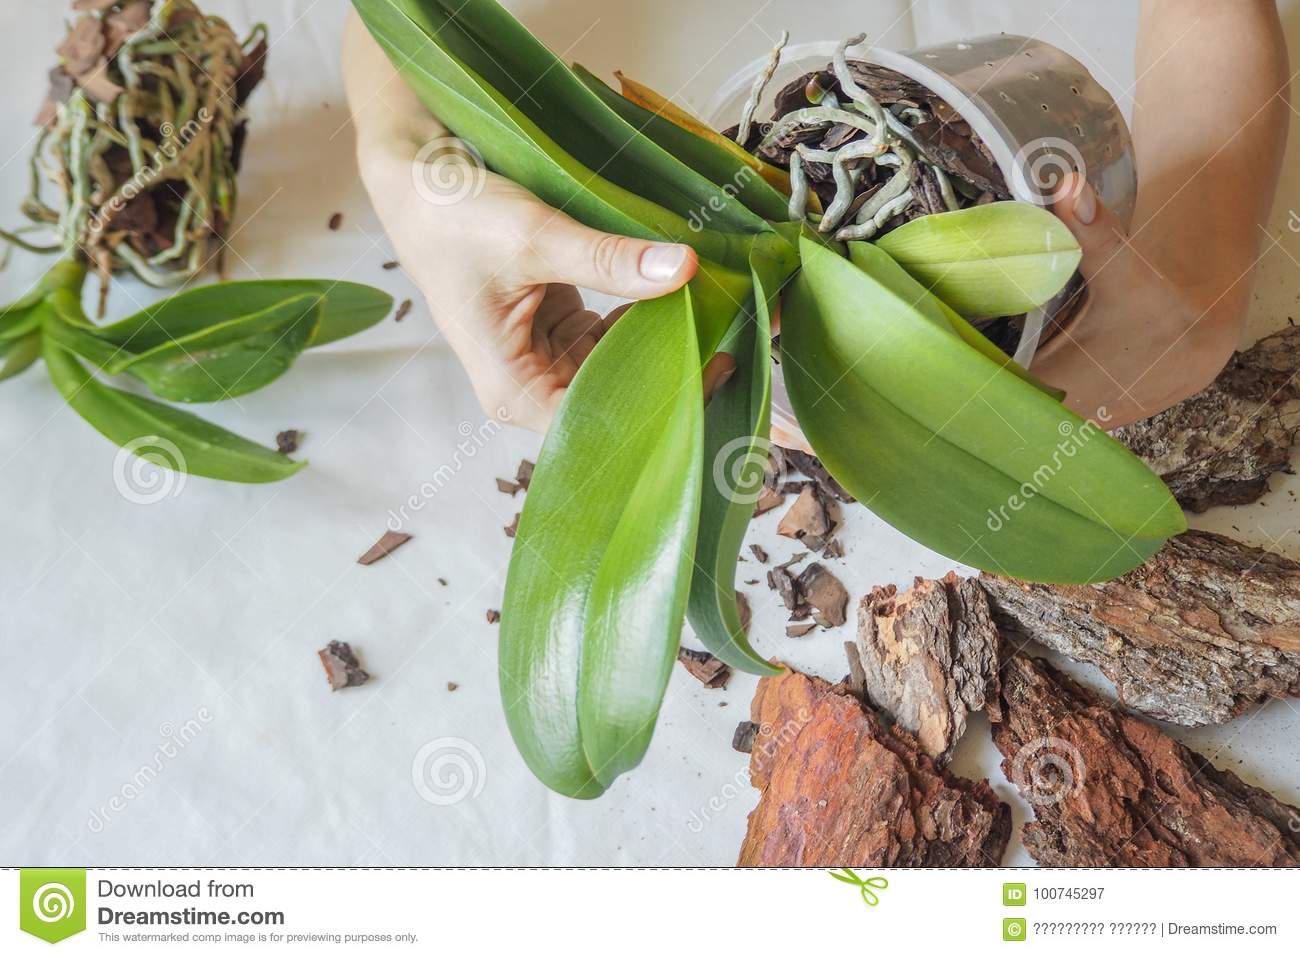 How to transplant an orchid at home